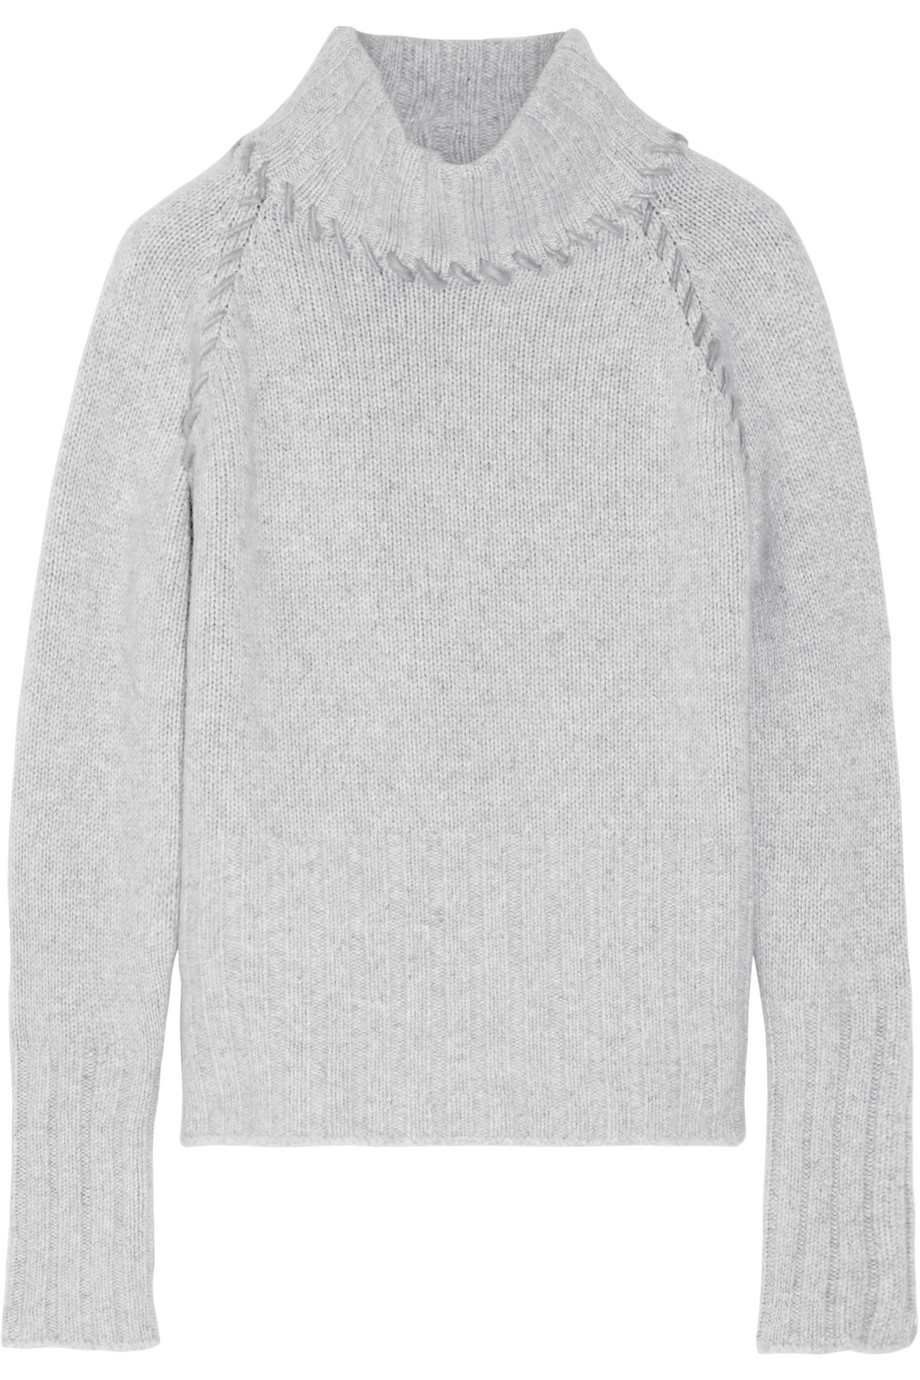 Cashmere Turtleneck Sweater, The Elder Statesman, Light Gray, Women's